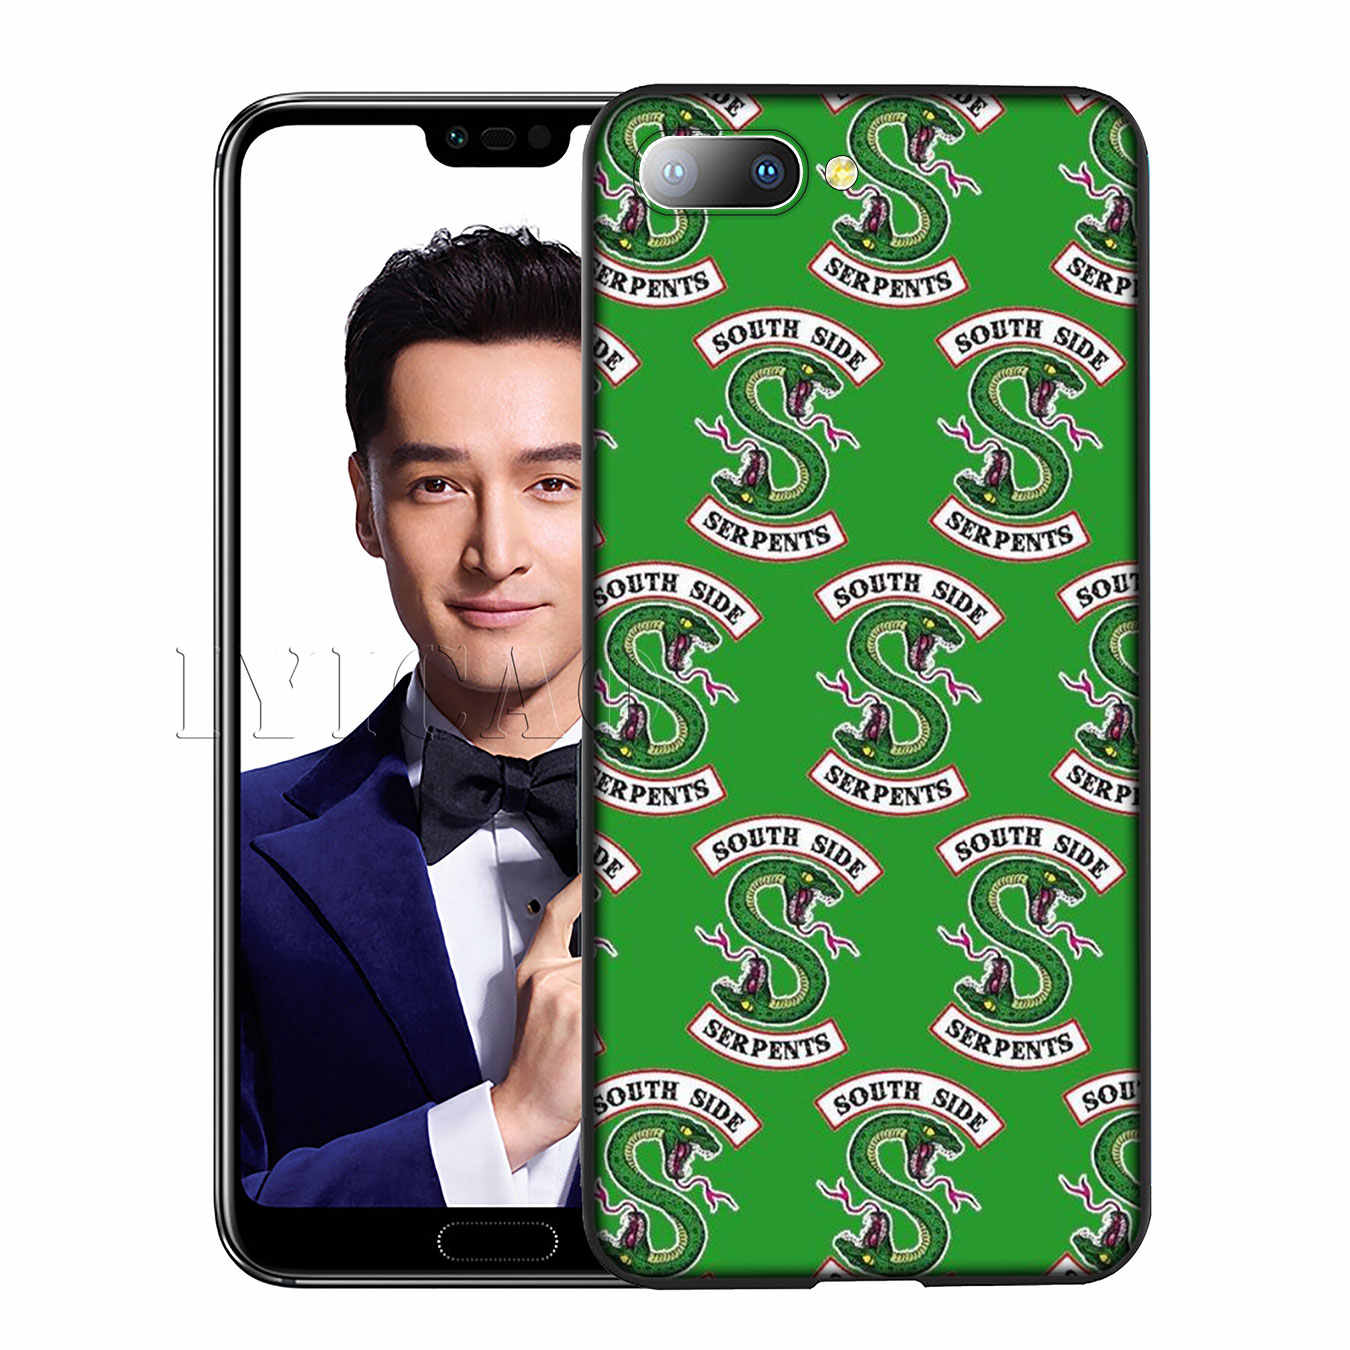 IYICAO Riverdale South Side Serpents love Soft Case for Huawei Y7 Y6 Prime Y9 2018 Honor 8C 8X 8 9 10 Lite 6A 7C 7X 7A Pro